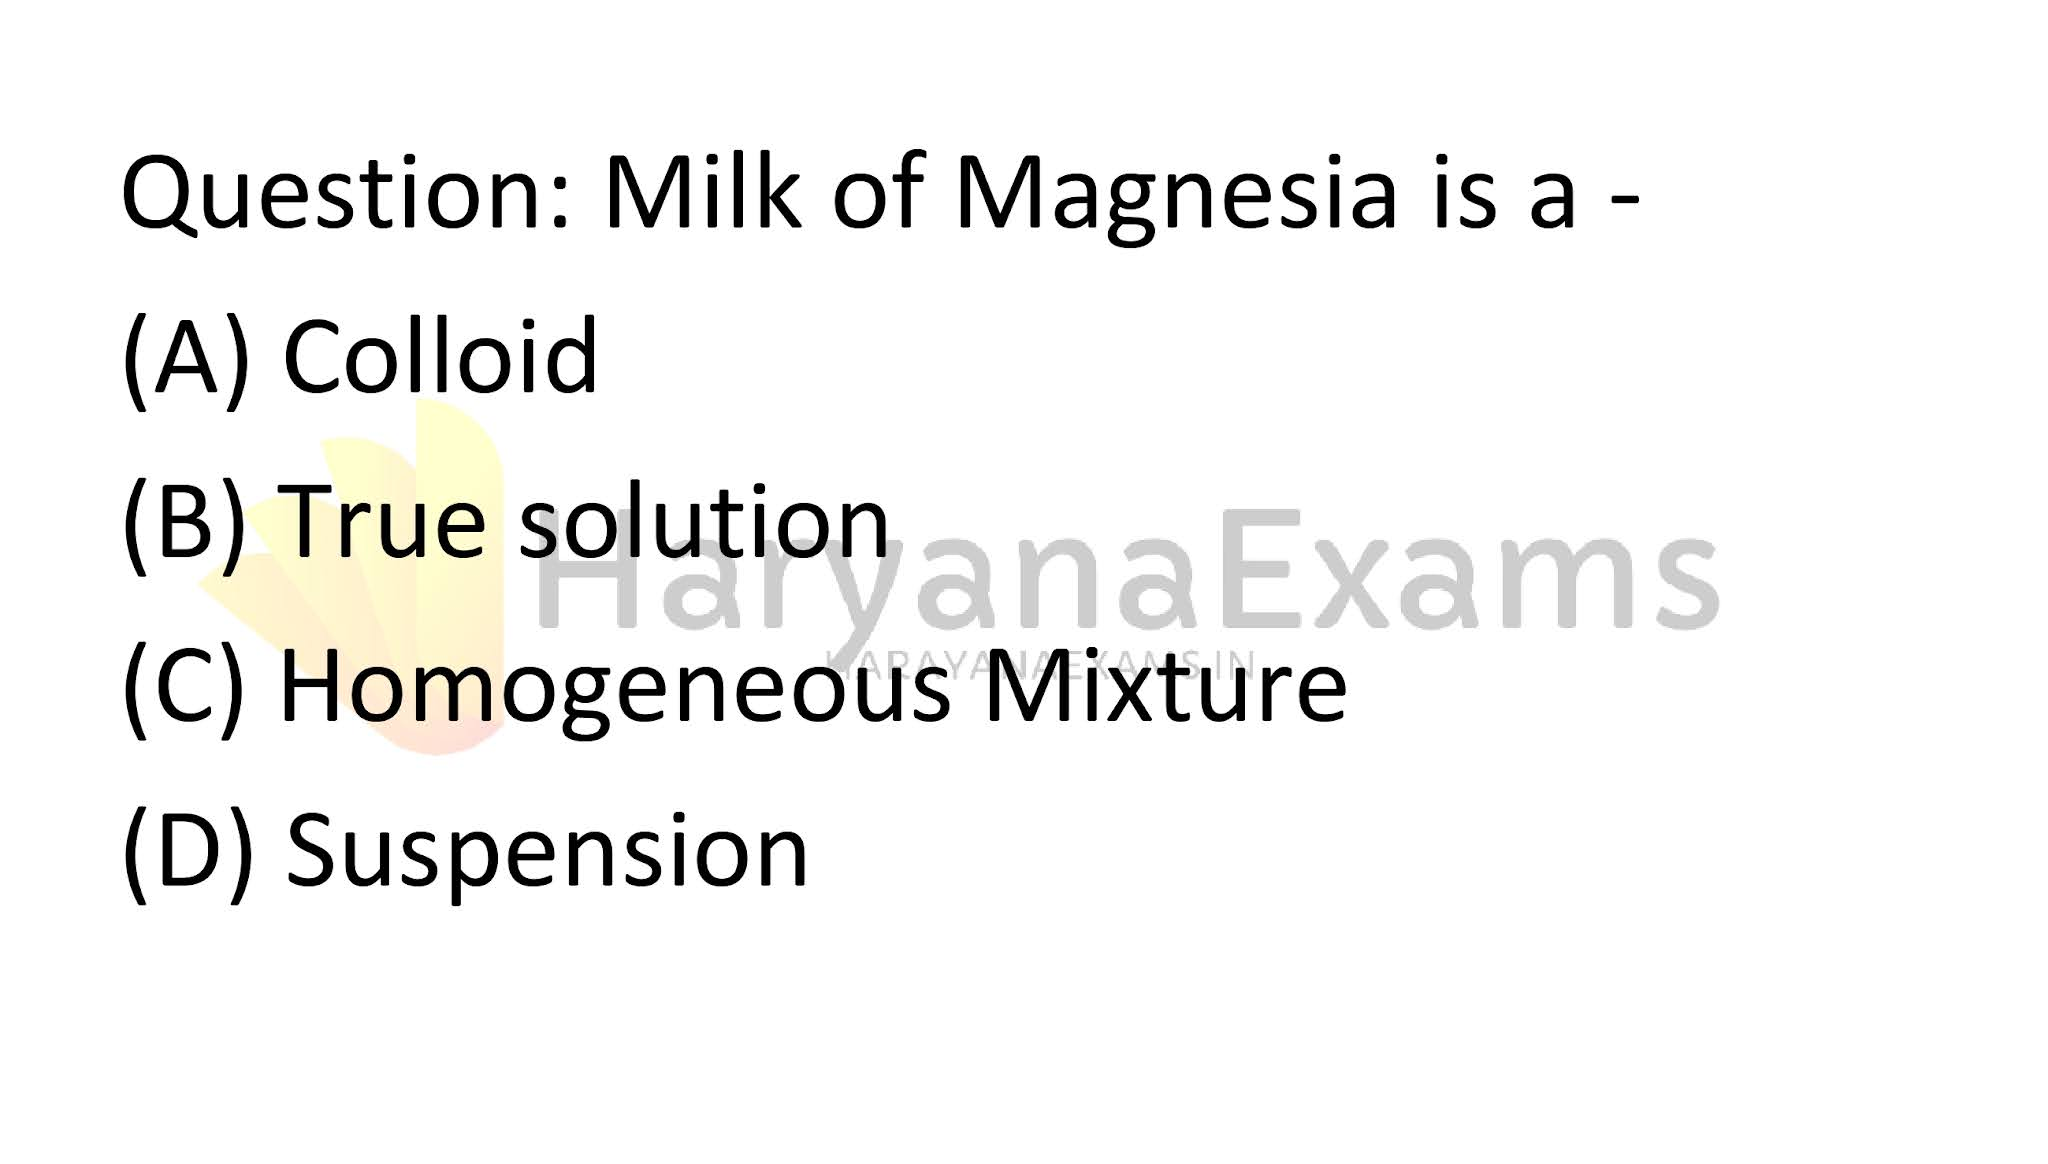 Milk of Magnesia is a -